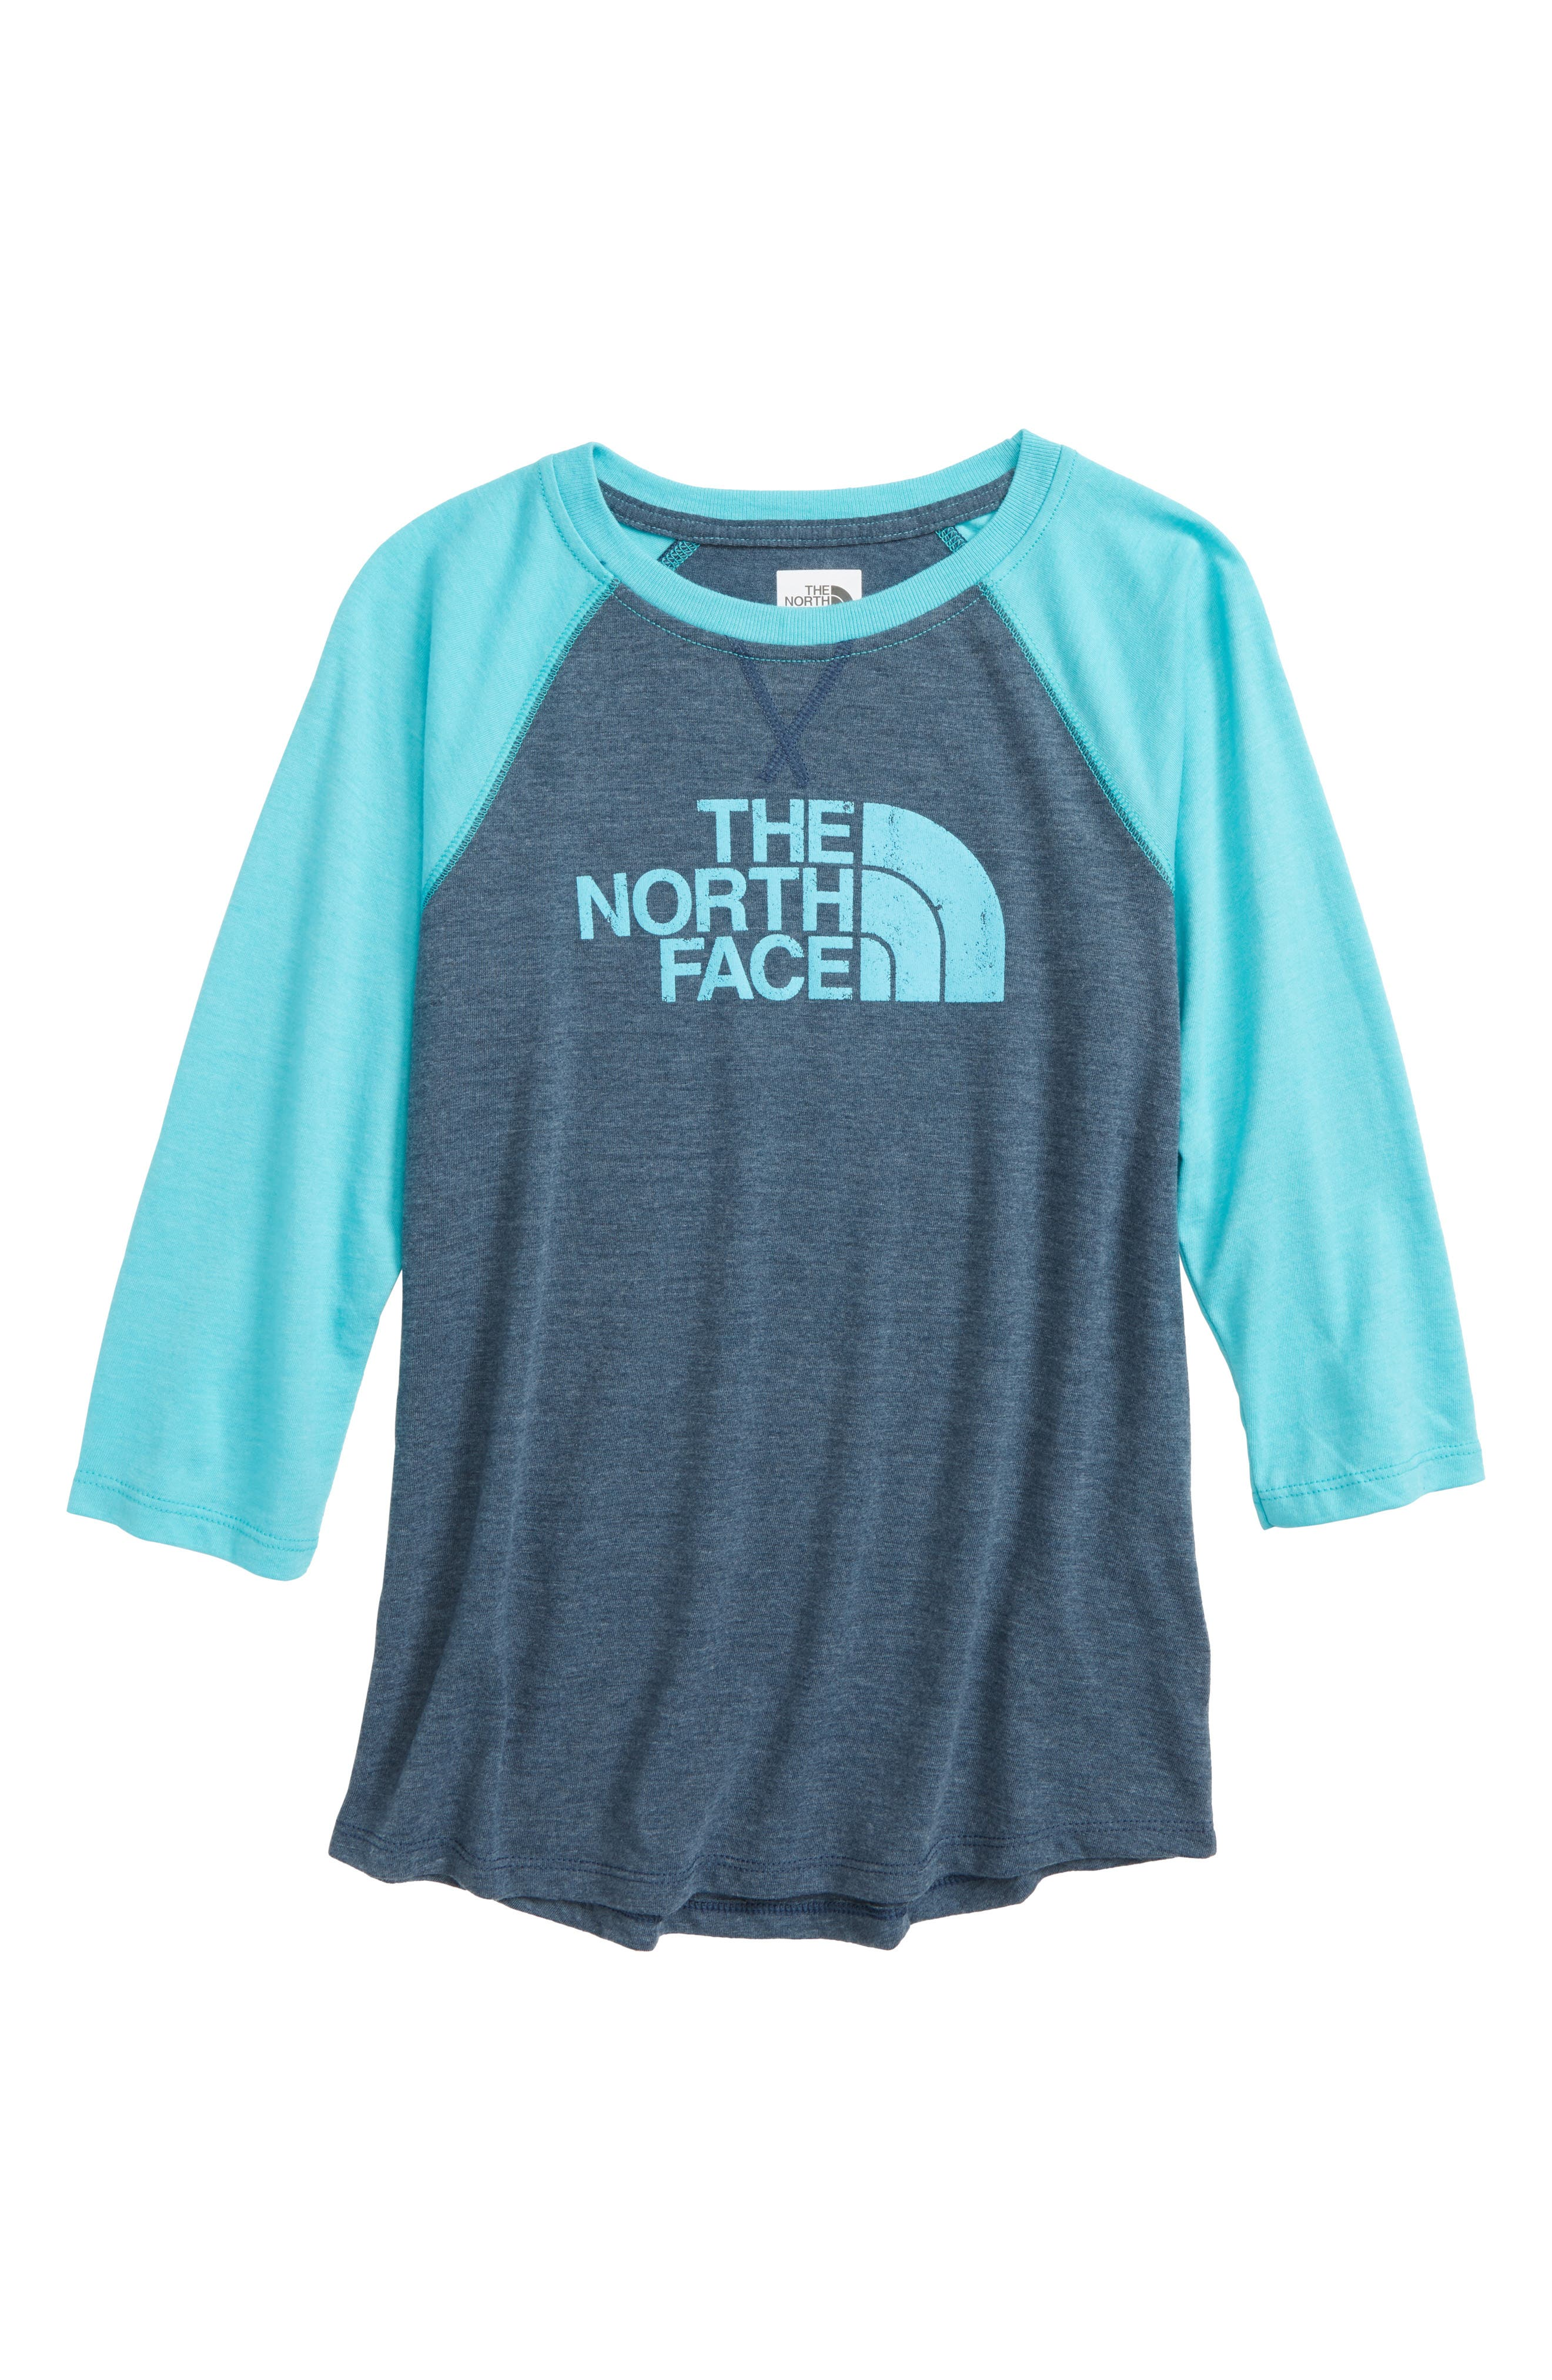 Three-Quarter Sleeve Tee,                         Main,                         color, Blue Wing Teal Heather